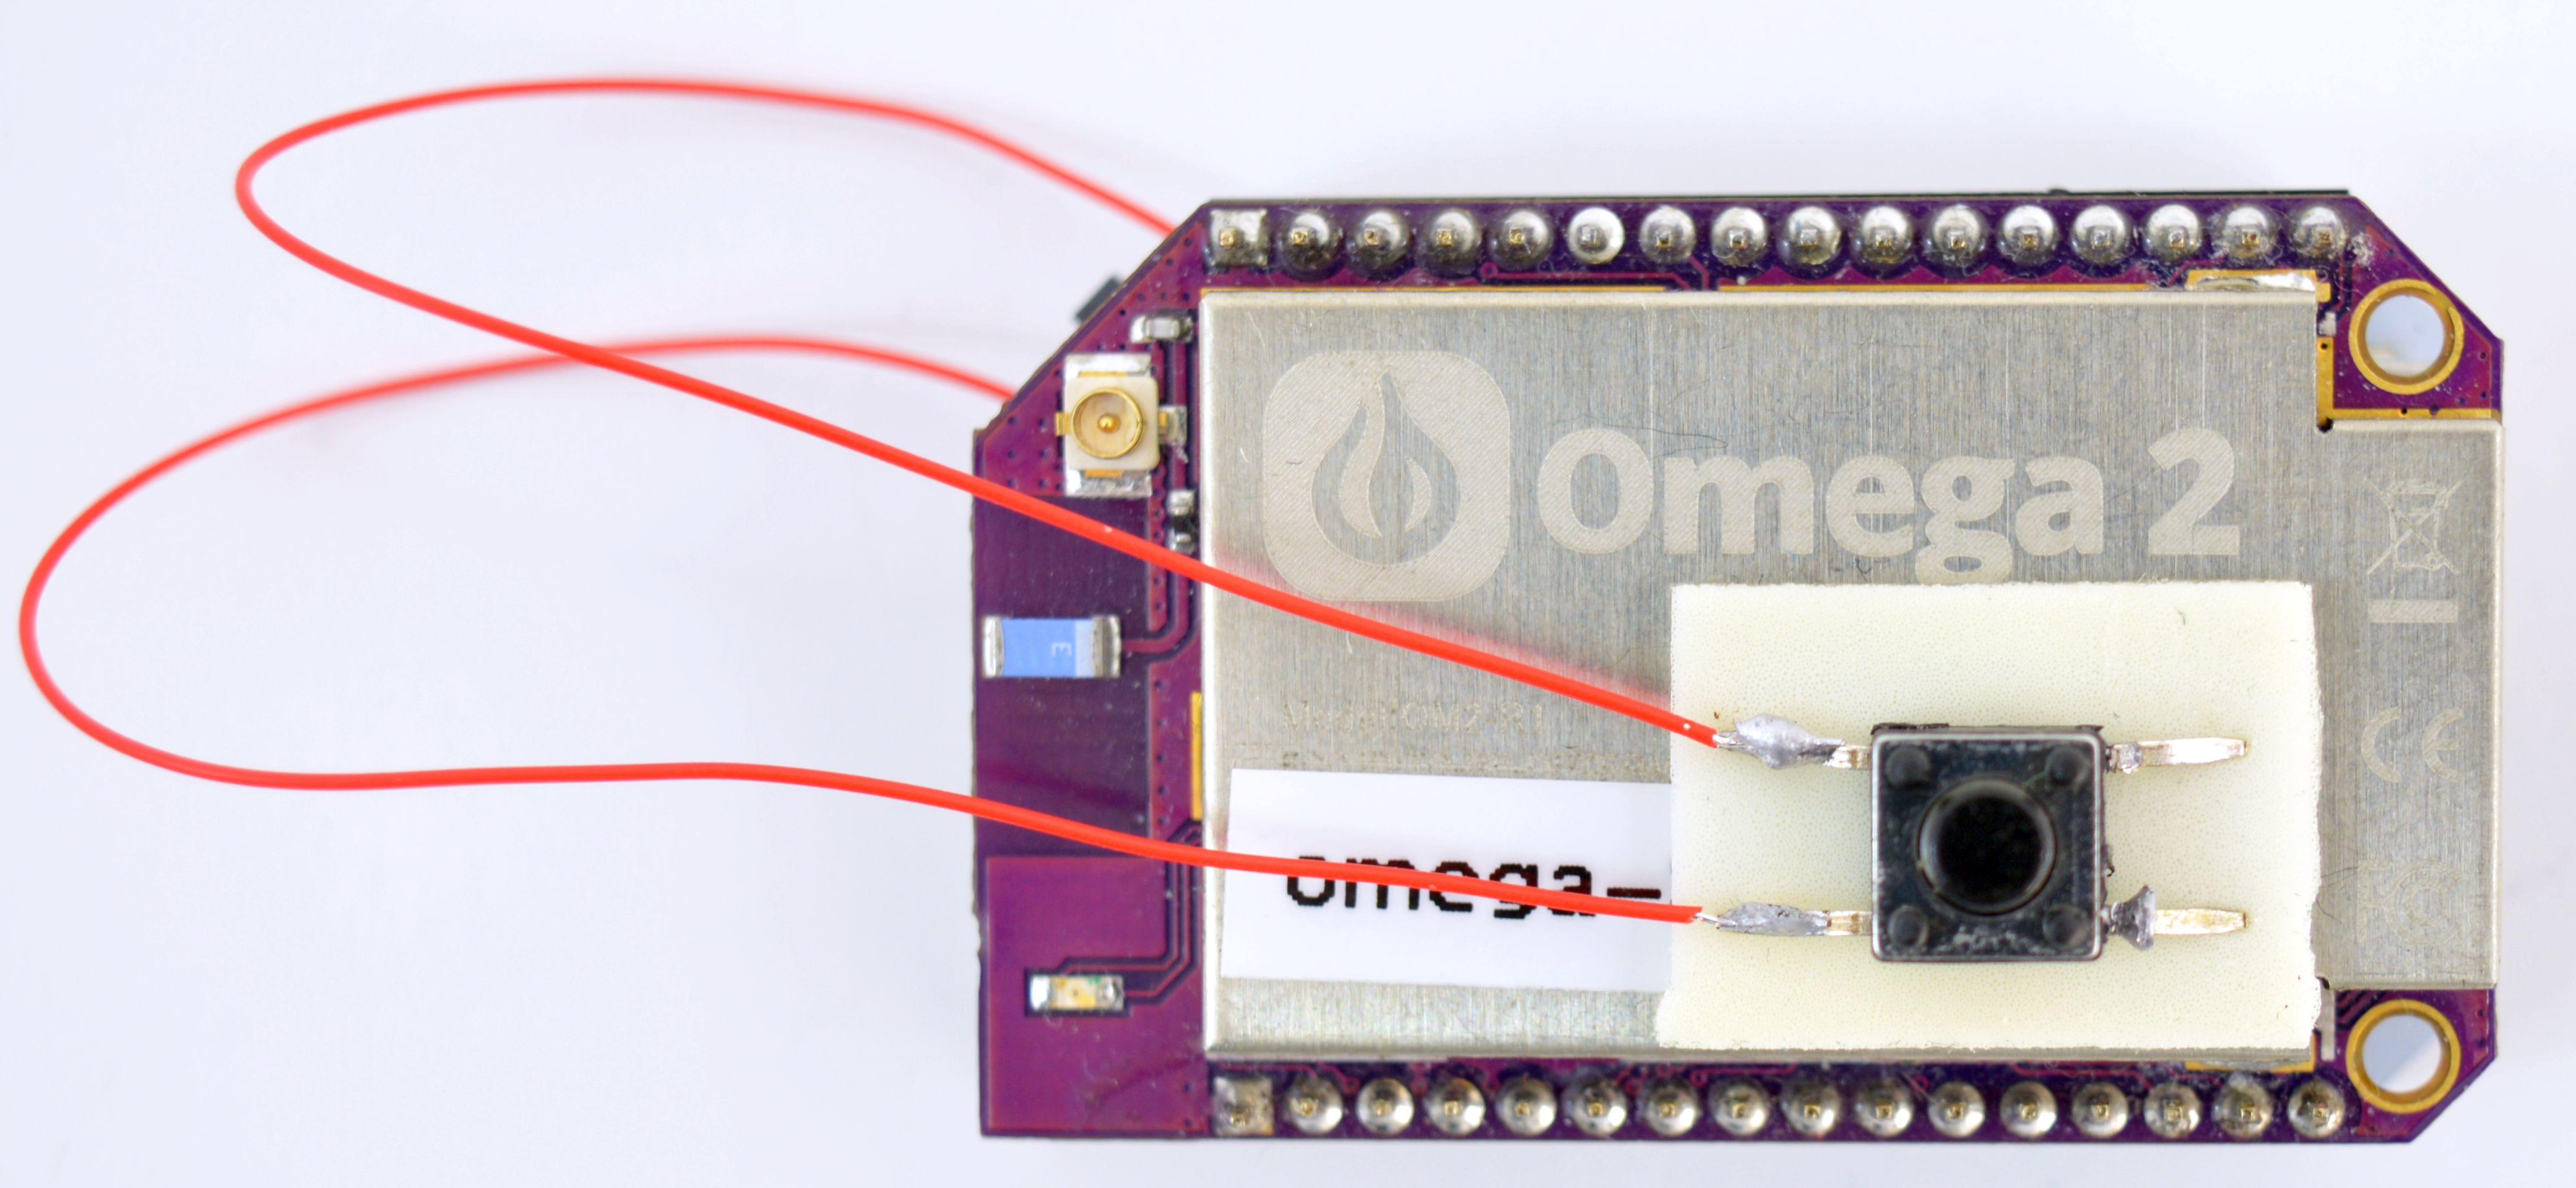 2 Bullet Tuesday: Python Web App Remote Control & Omega IoT Button